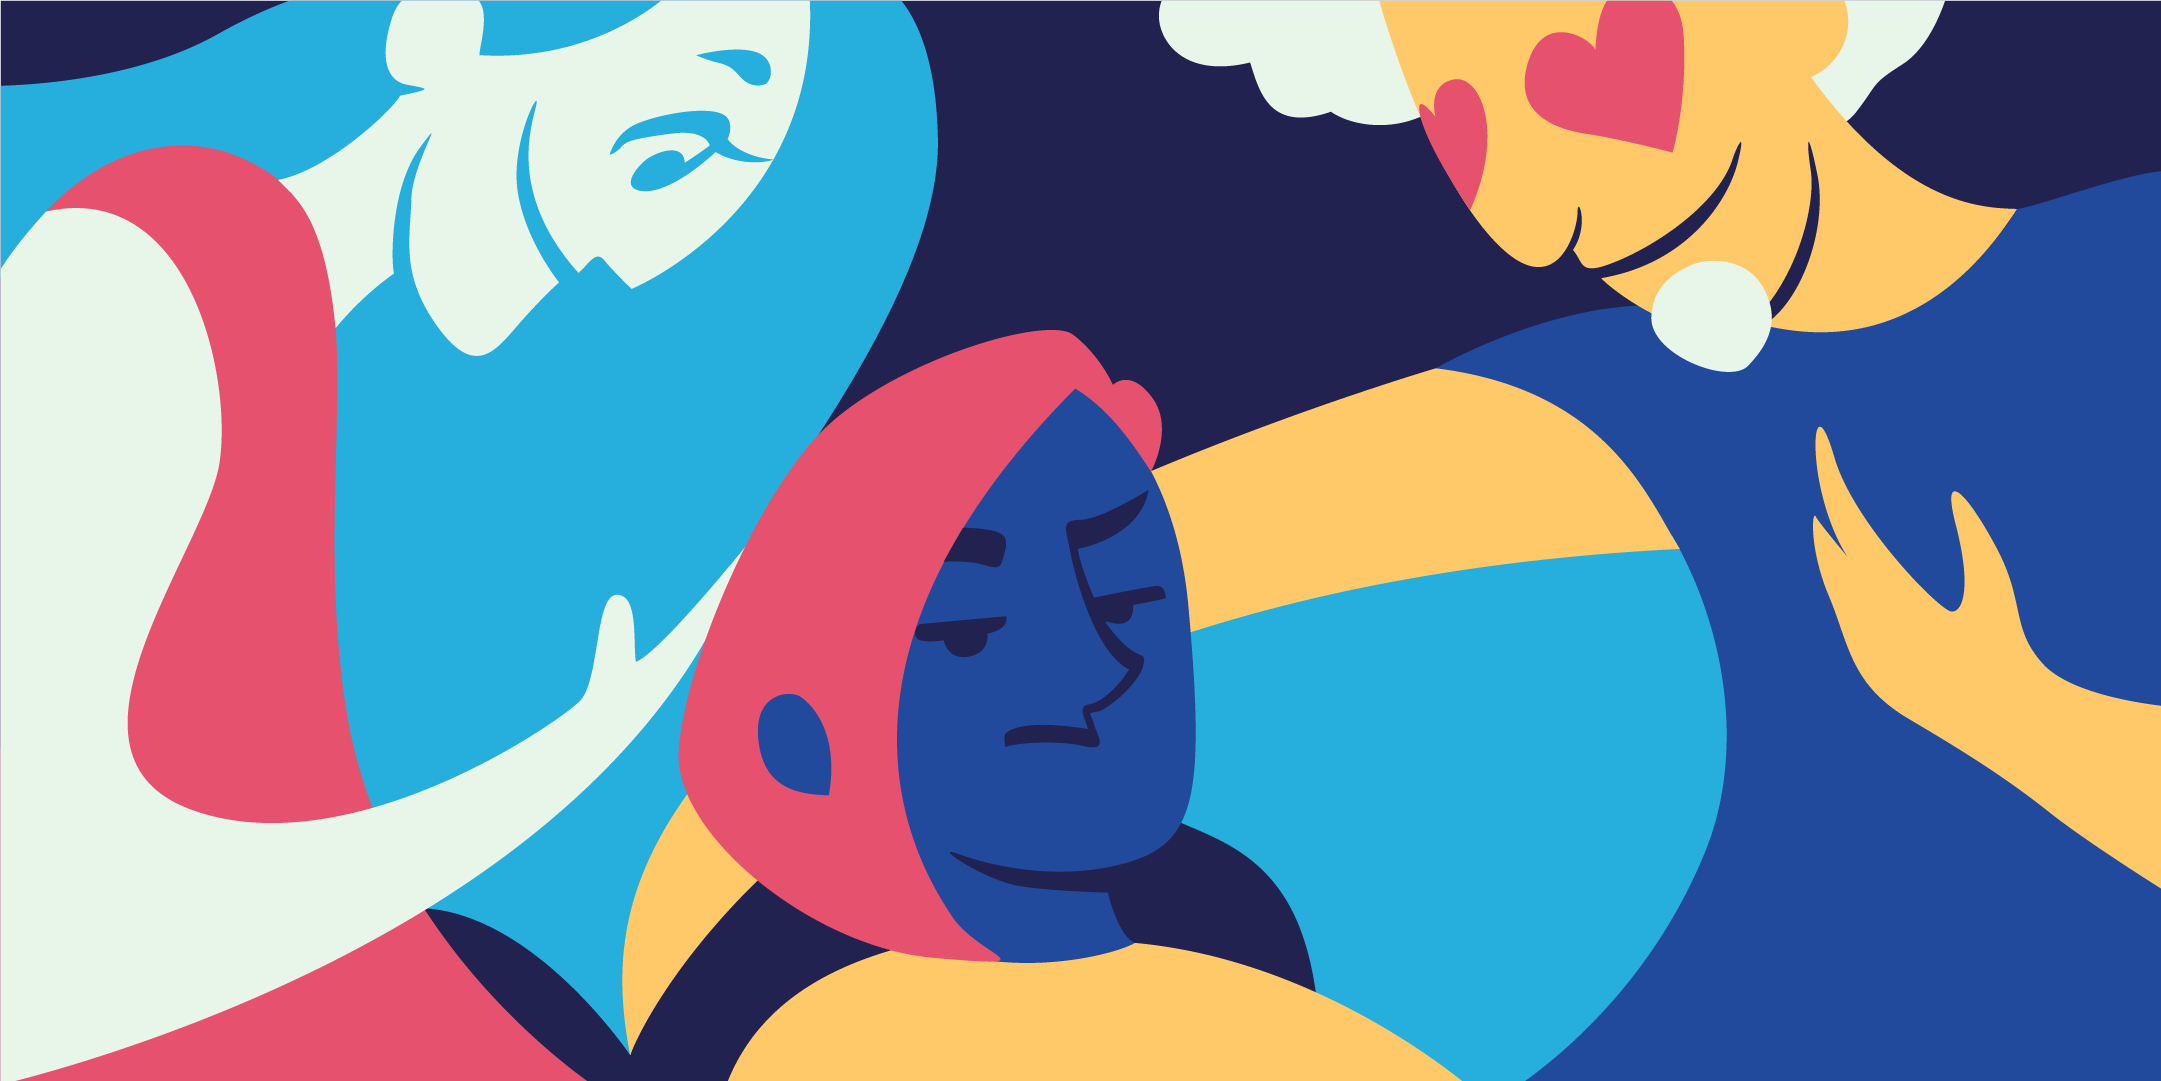 A colourful illustration of three people, one person has hearts on their eyes